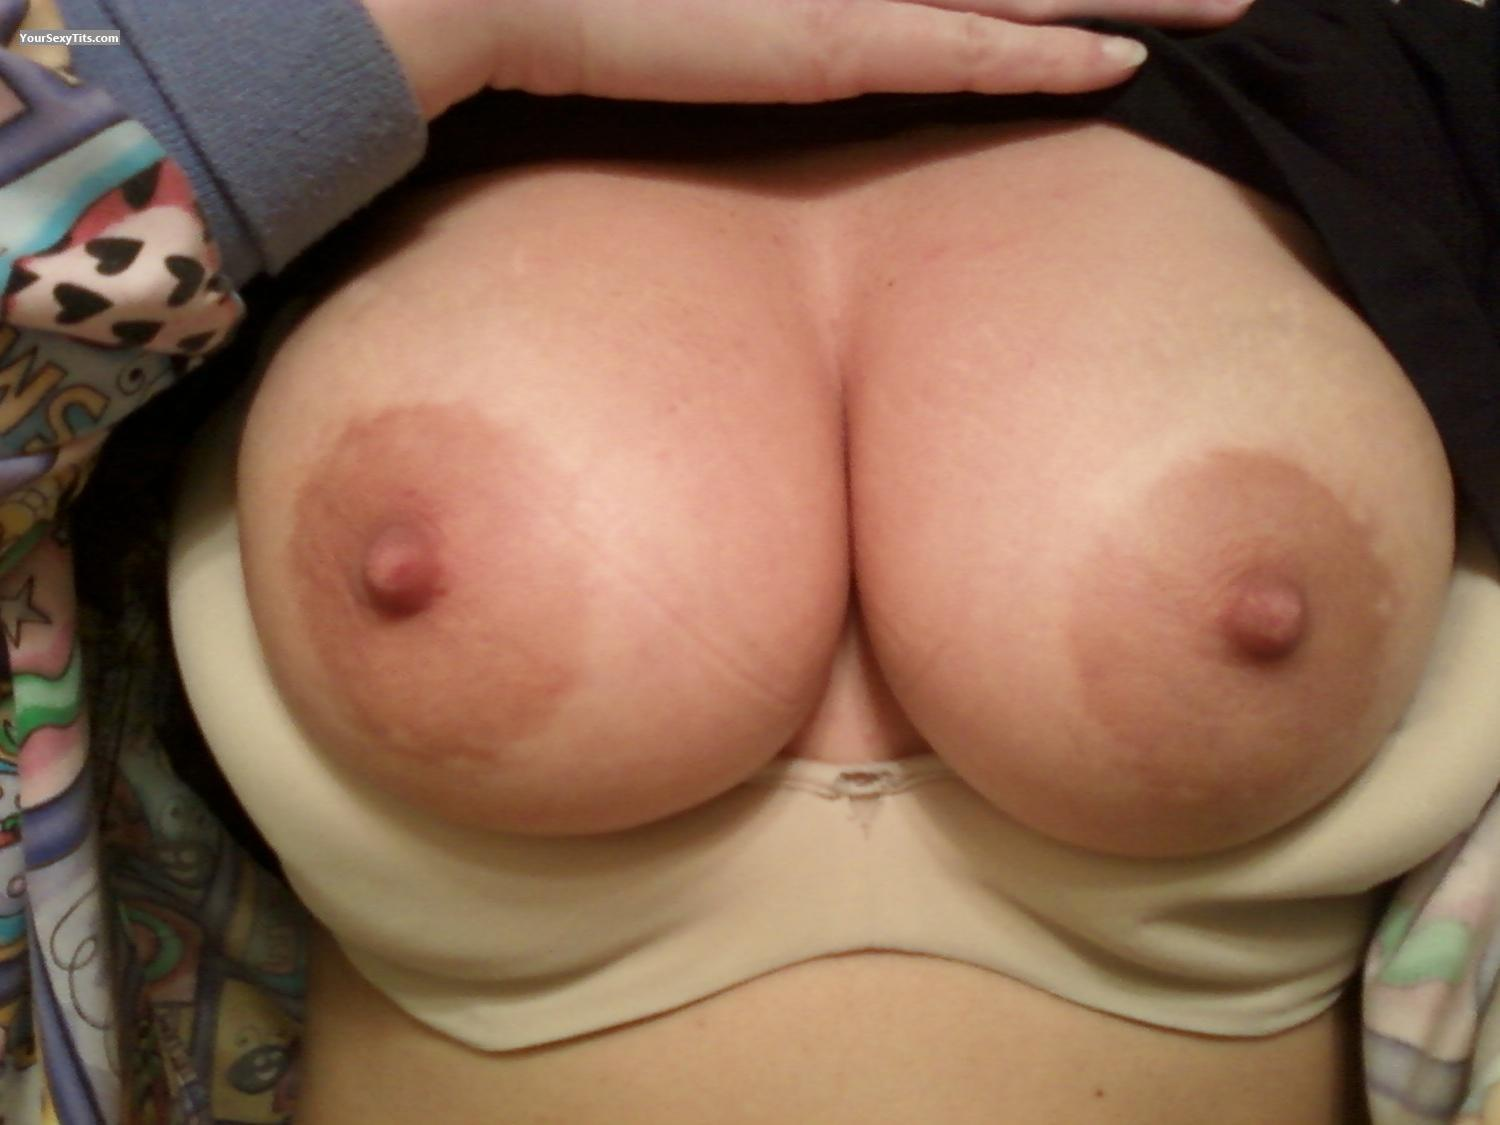 Tit Flash: My Medium Tits By IPhone (Selfie) - Hot Wife from United States